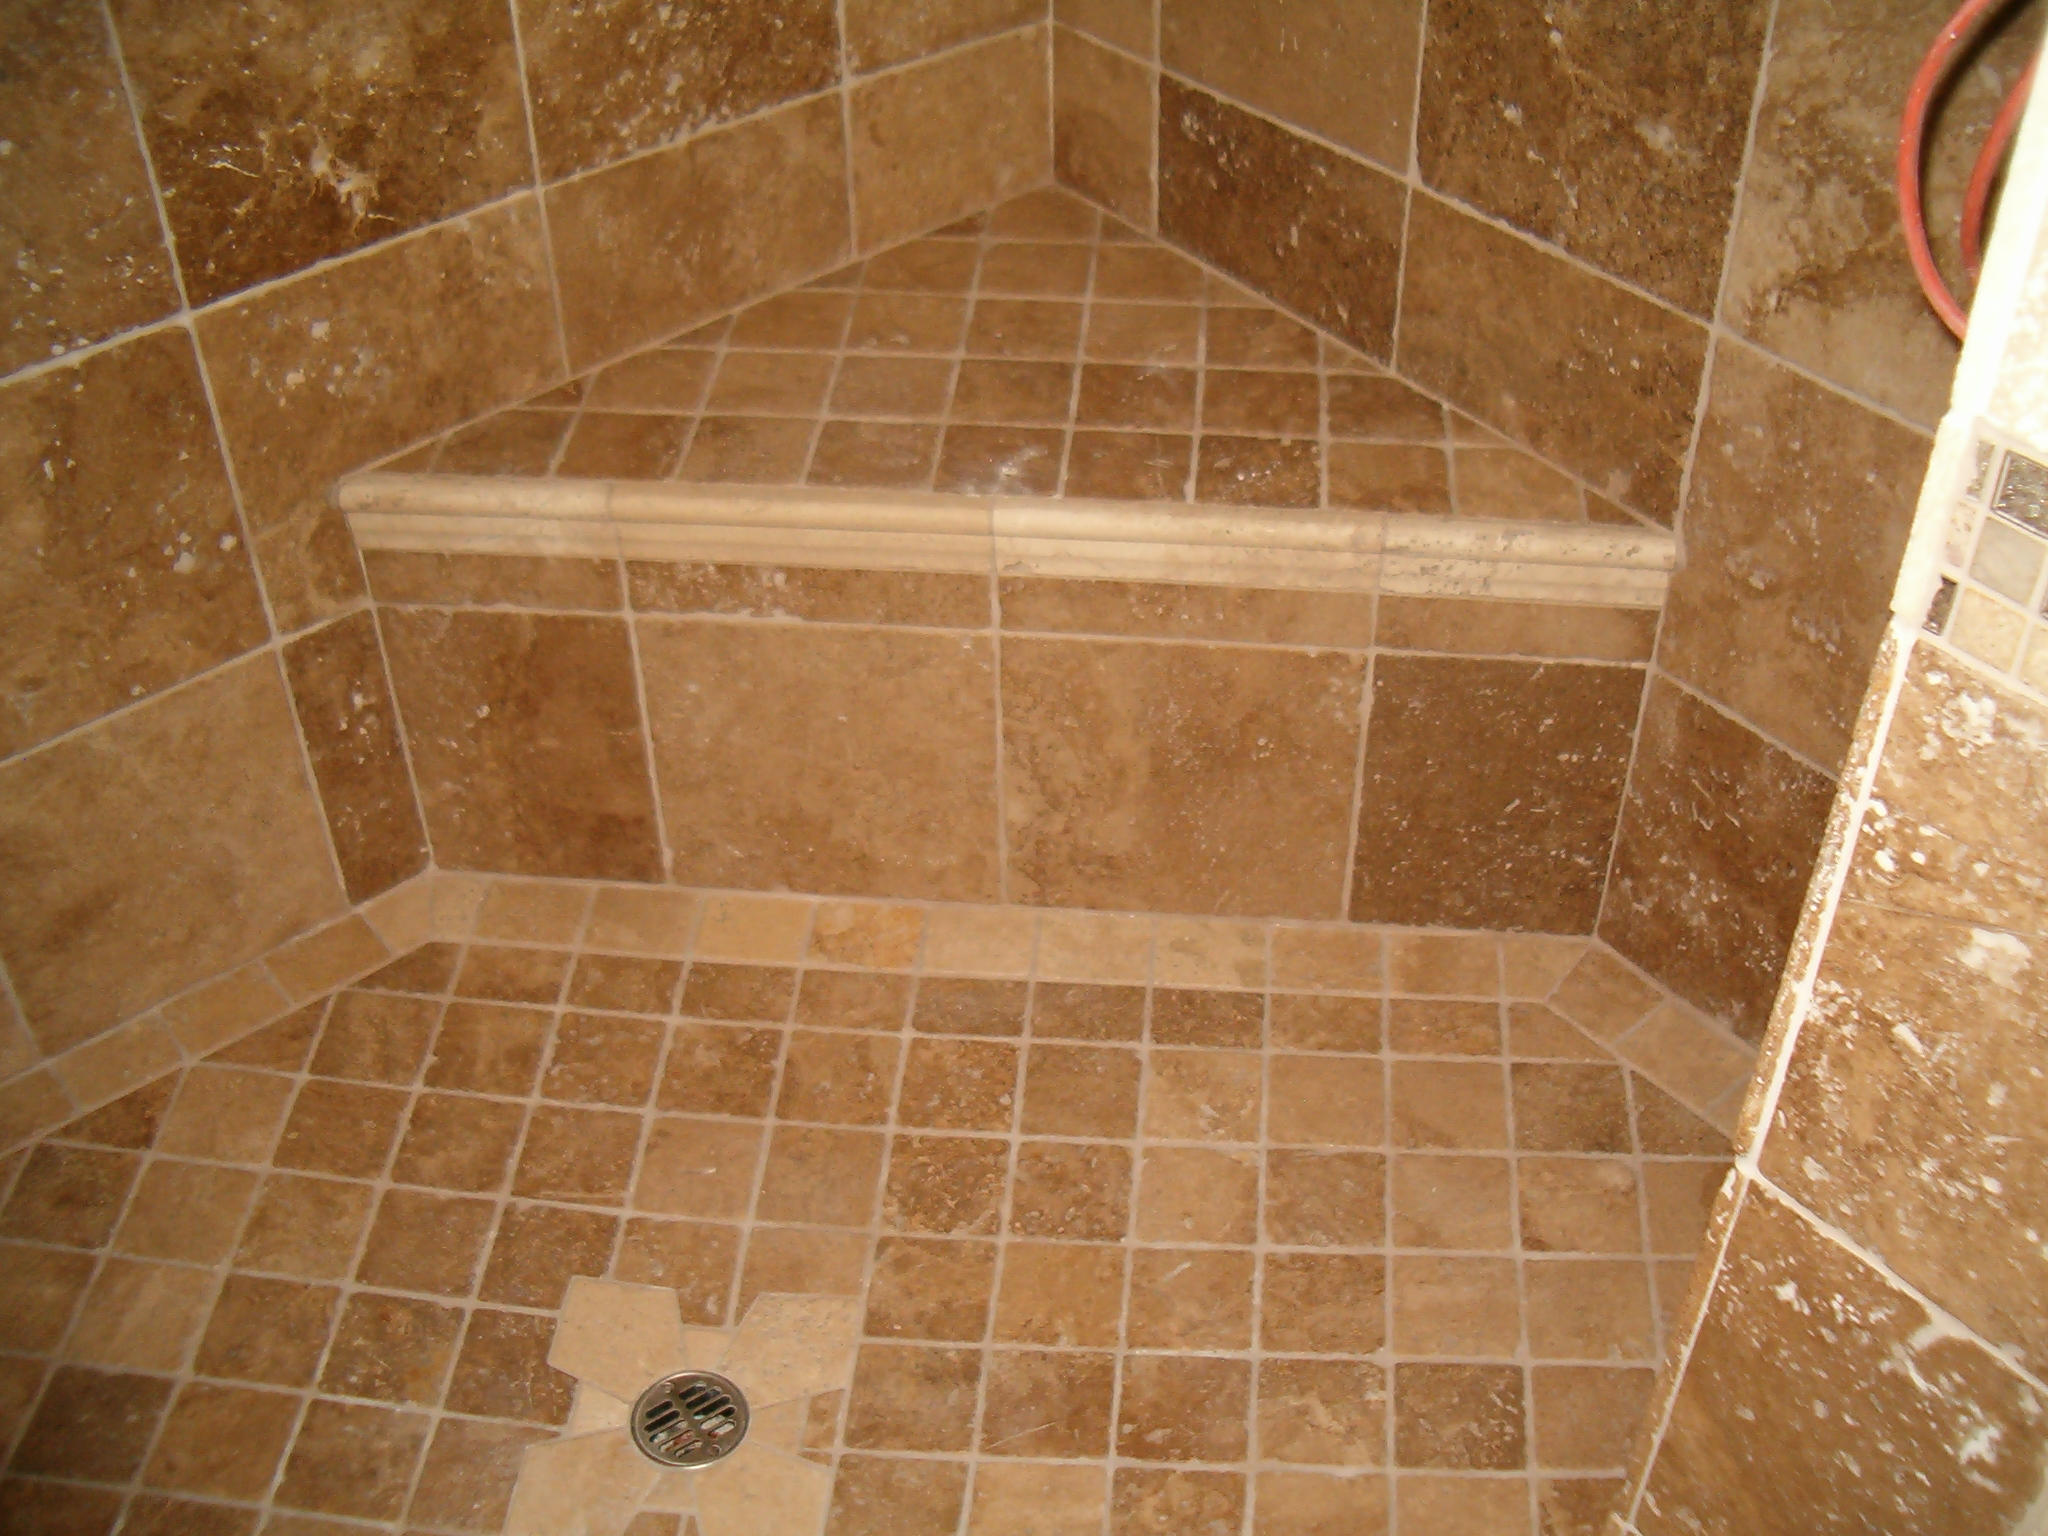 Bathroom Floor Ceramic Tile Design Ideas ~ Shower anatomy